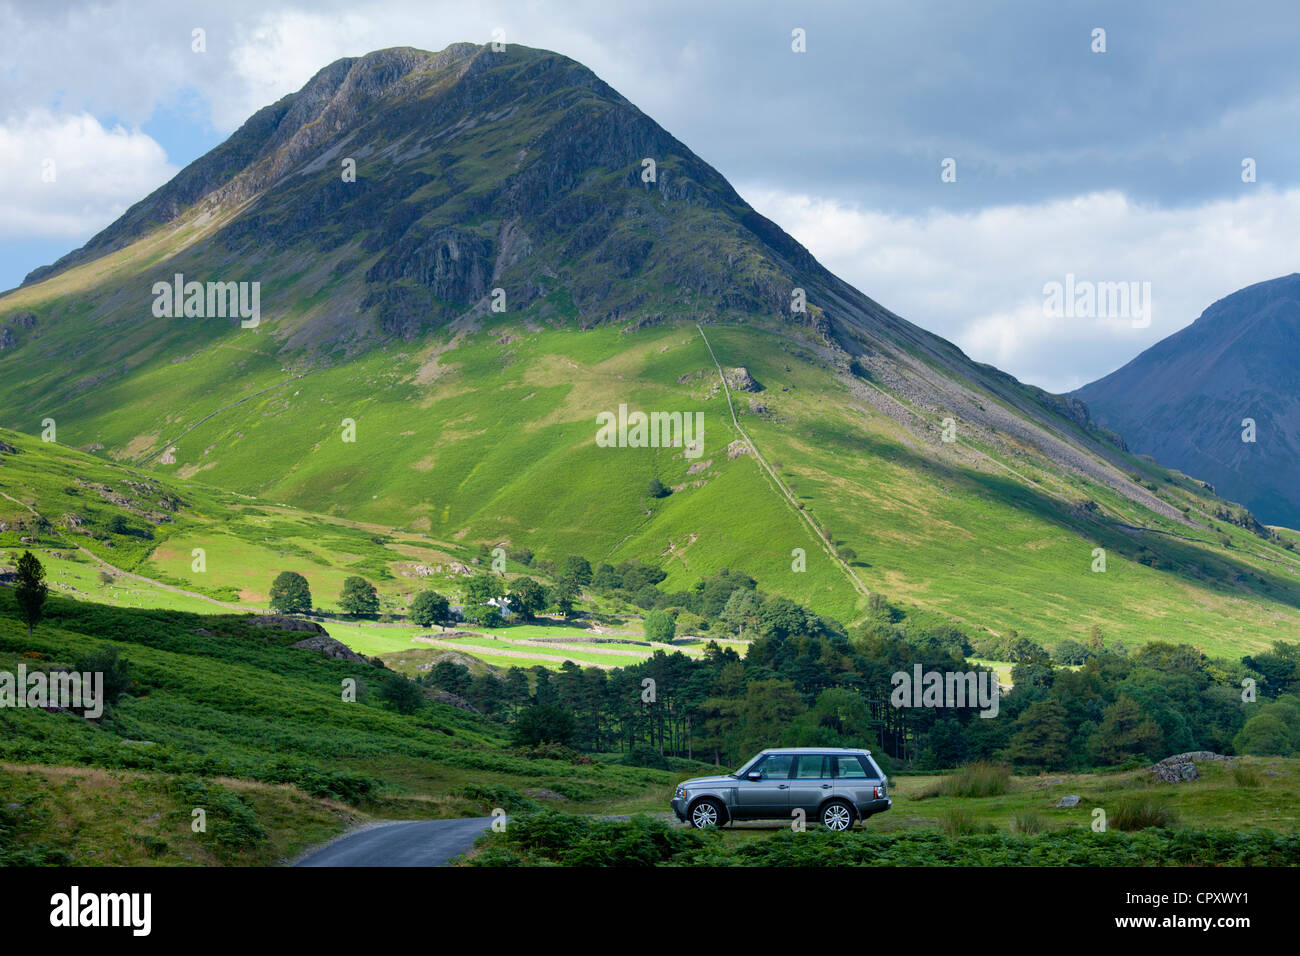 Range Rover 4x4 vehicle by Wasdale Fell and Wastwater in the Lake District National Park, Cumbria, UK - Stock Image